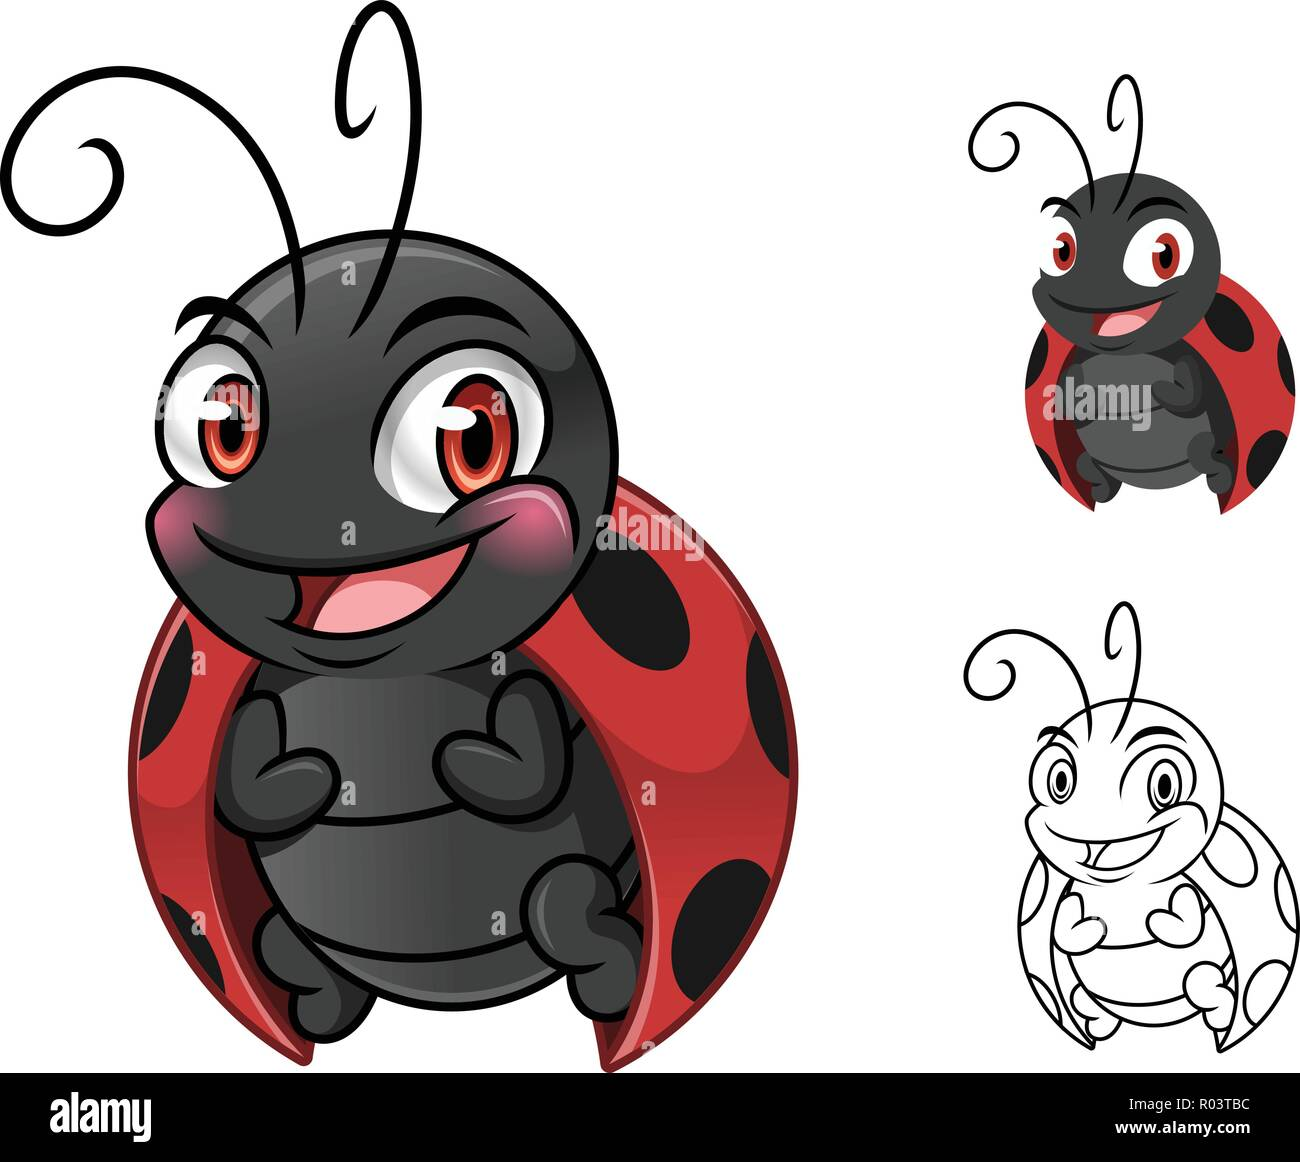 A Cartoon Ladybug ladybug cartoon character mascot design, including flat and